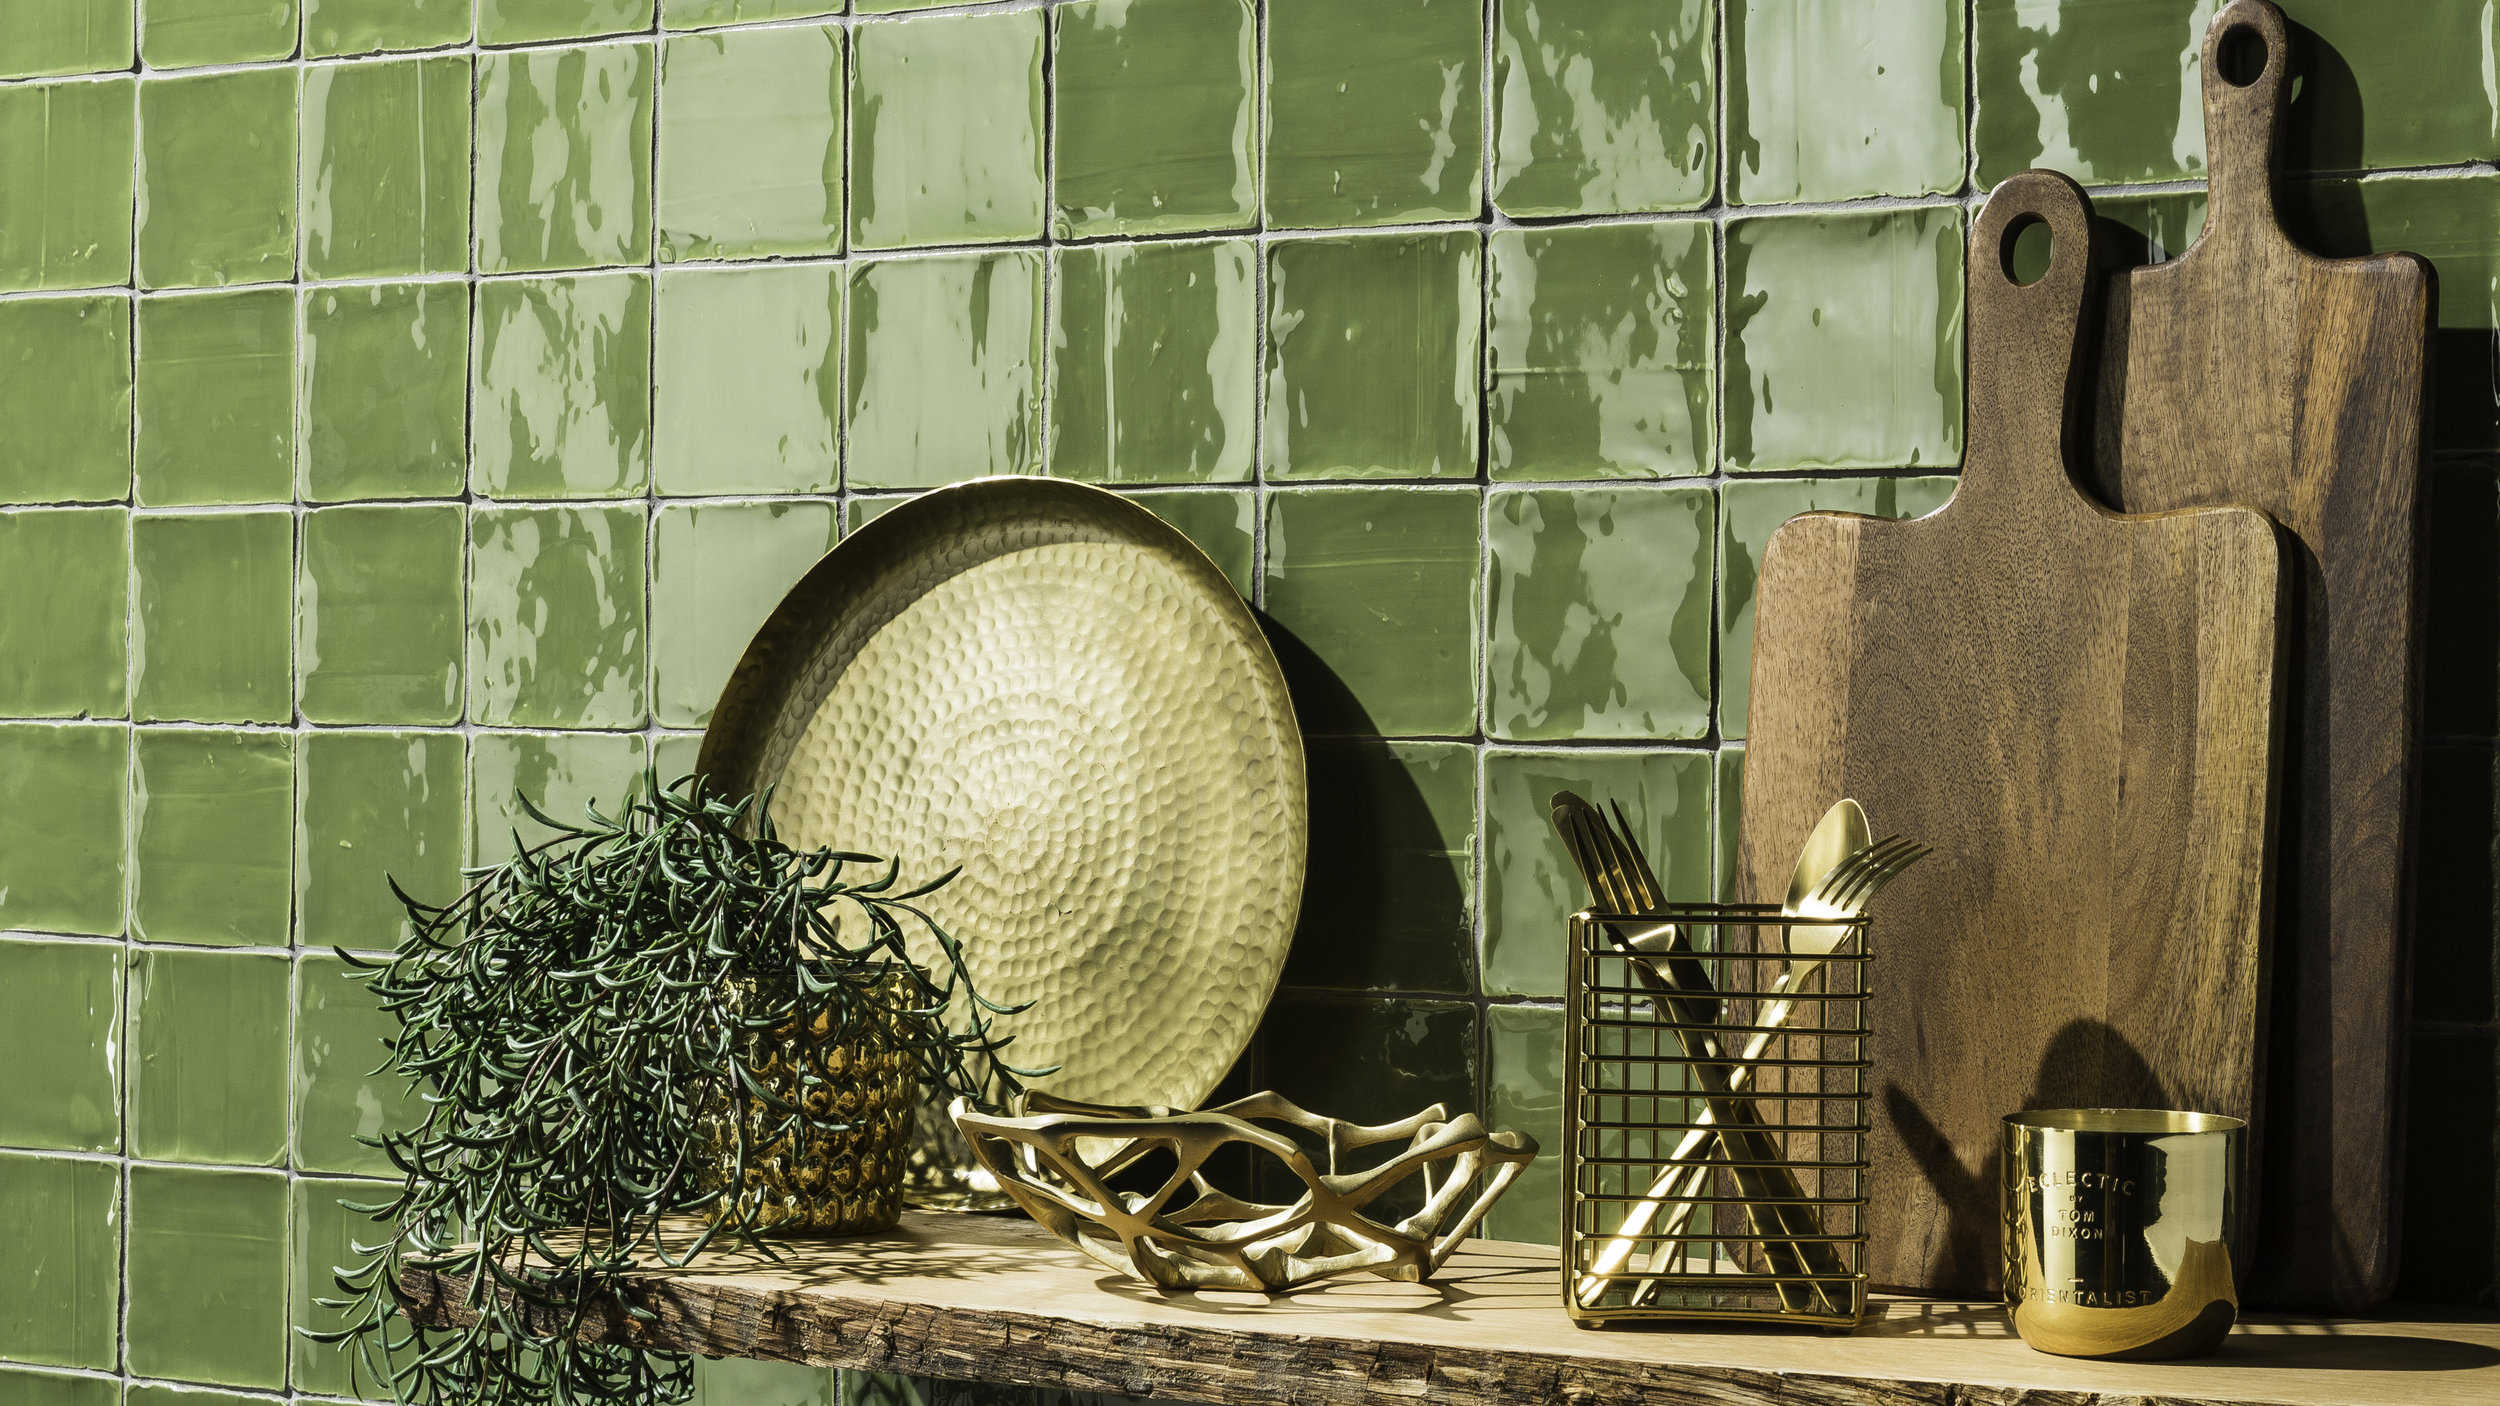 Country Rustic in Apple Green from Johnson Tiles' Minton Hollins Collection